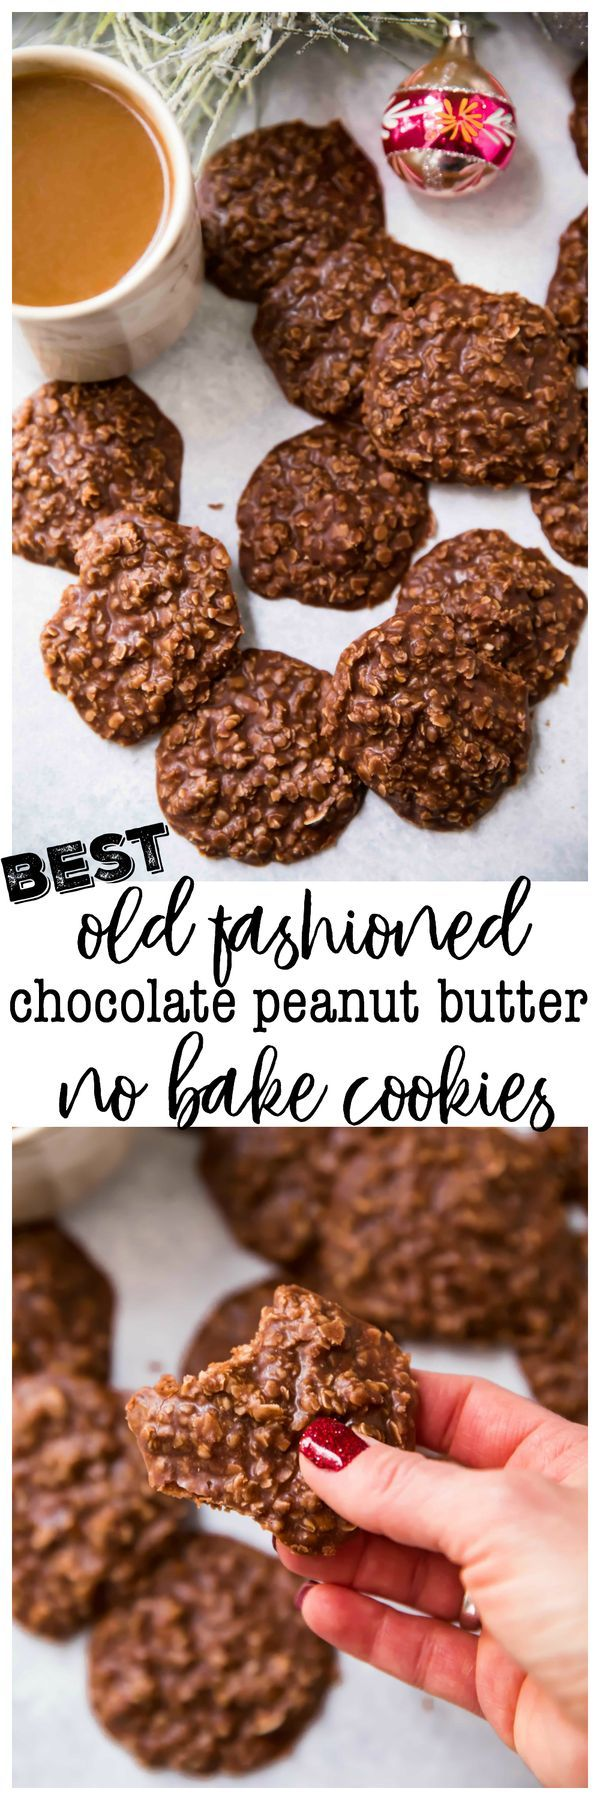 These Old Fashioned Chocolate Peanut Butter No Bake Cookies really are the best when you're looking for that delicious treat!